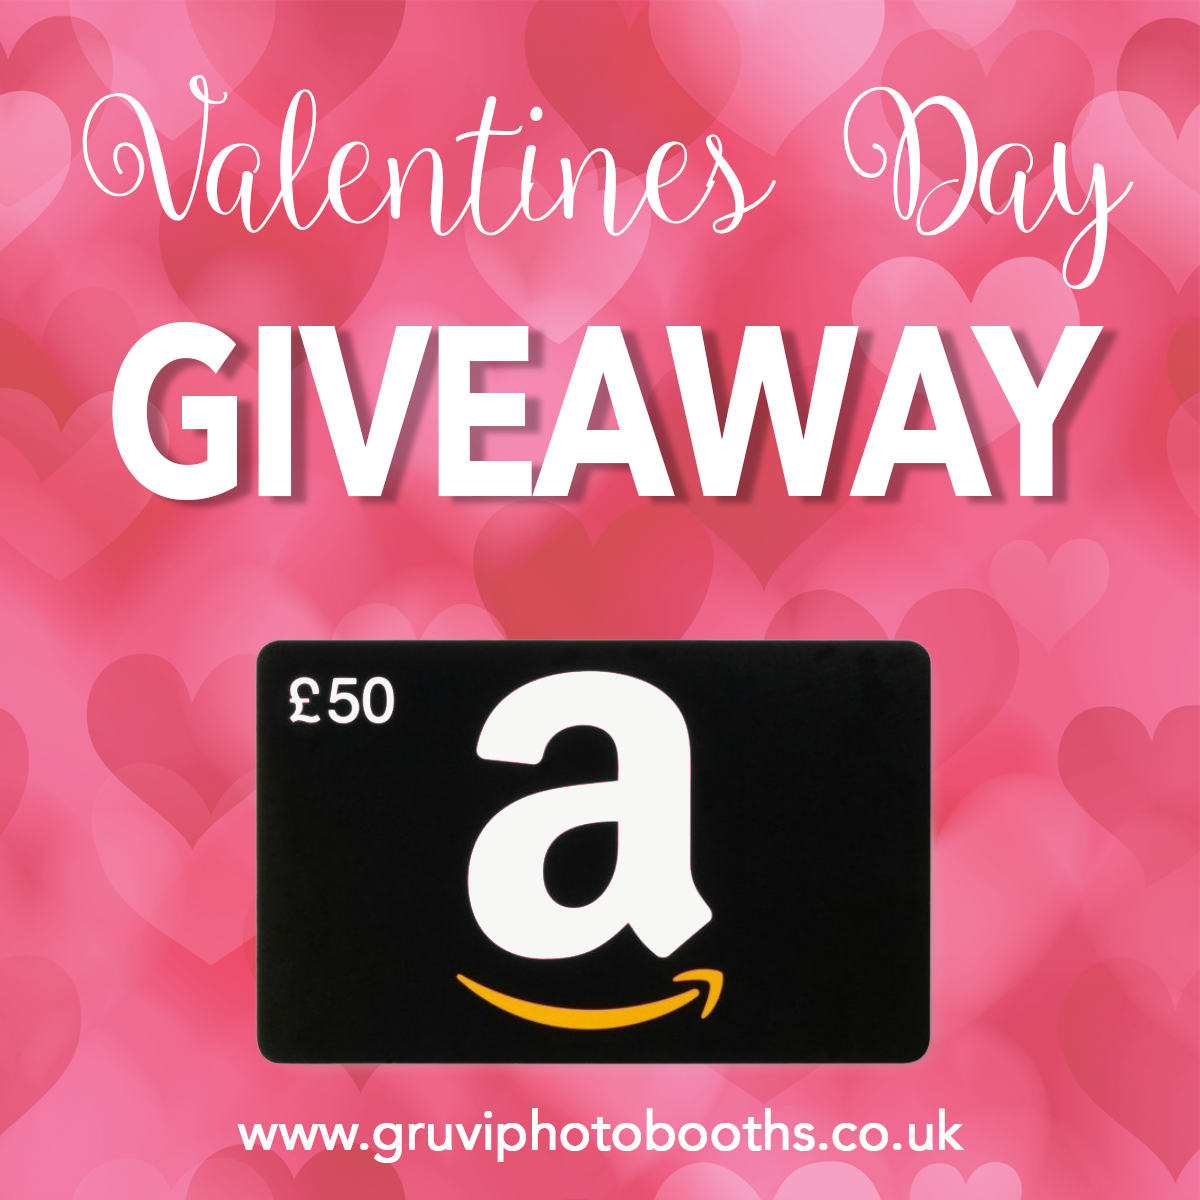 Win with Gruvi Photo Booths